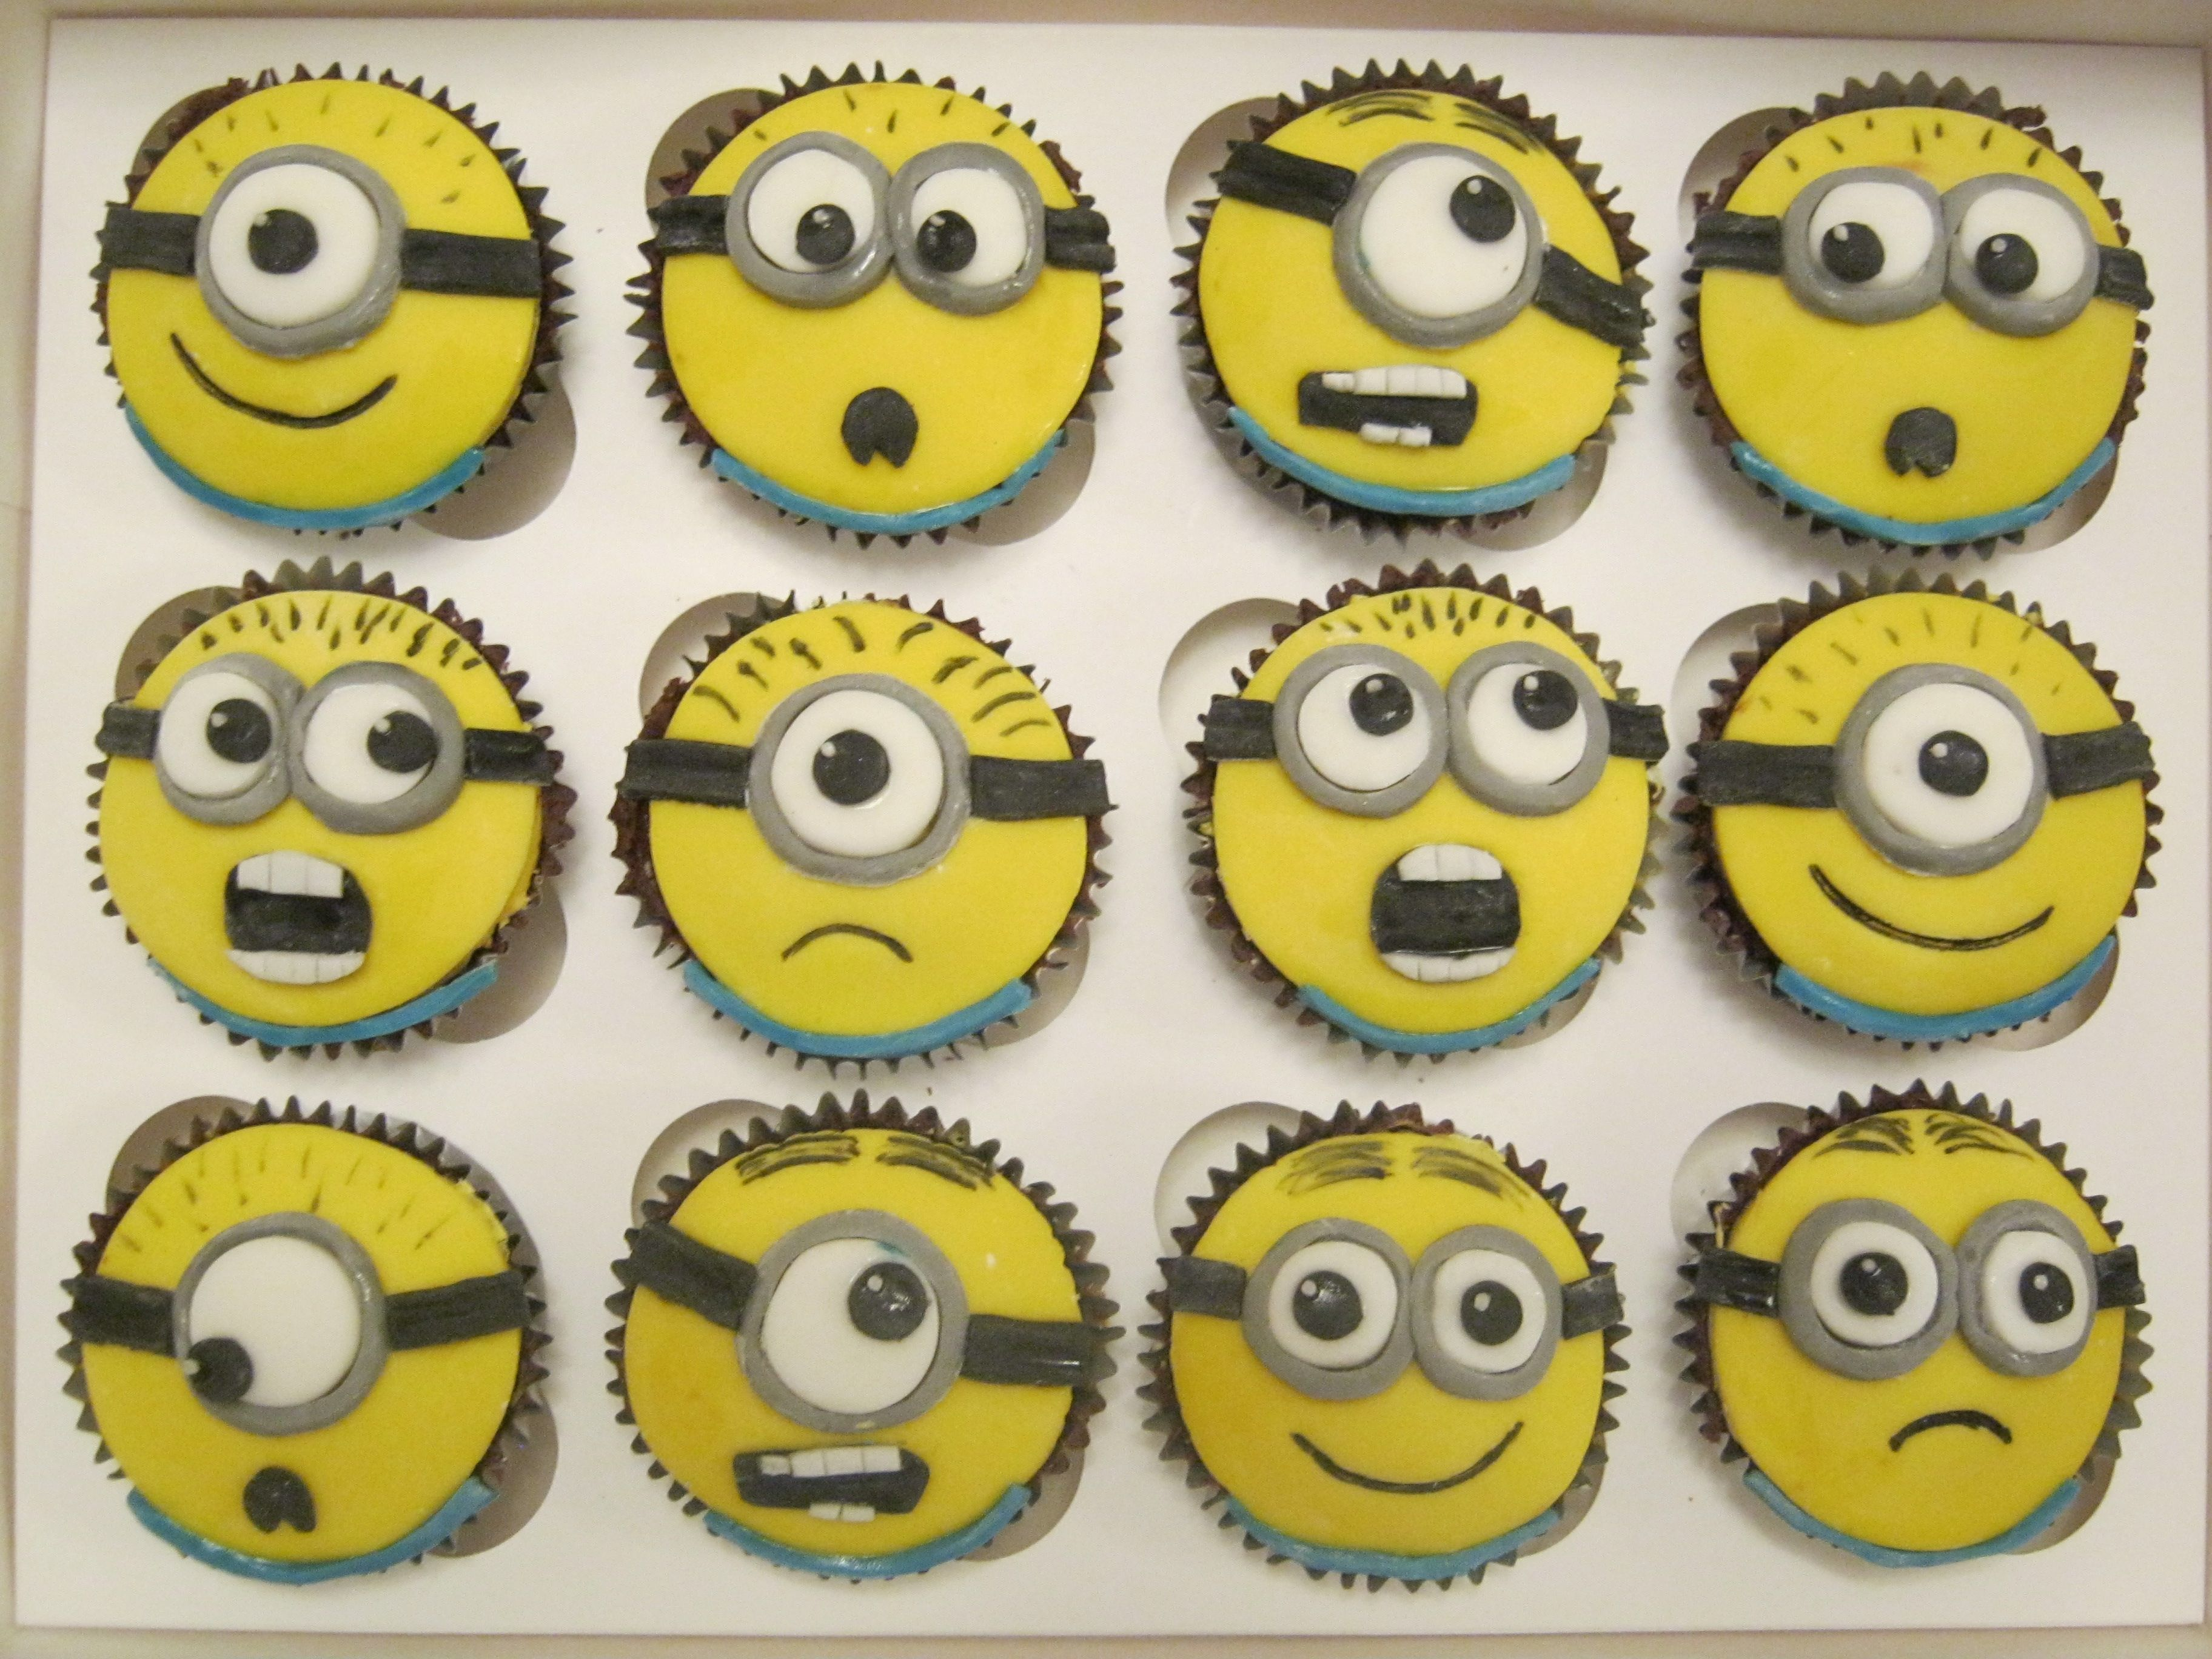 Stupendous Despicable Me Minions Despicable Me Minions For My Daughters Funny Birthday Cards Online Aeocydamsfinfo